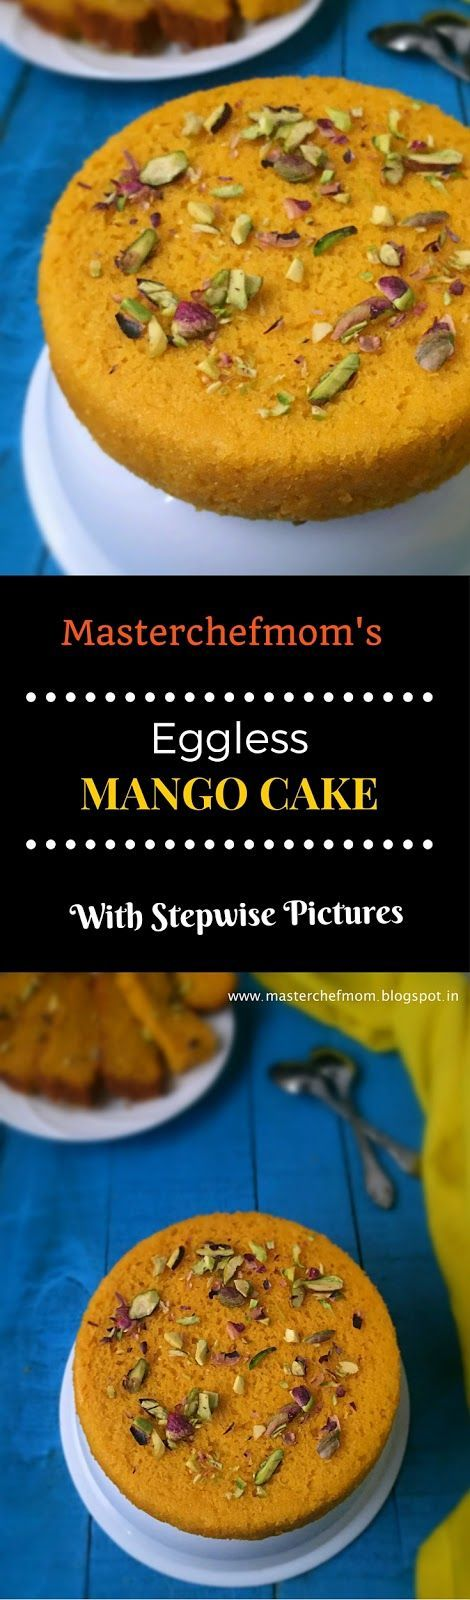 MASTERCHEFMOM: Eggless Mango Cake | How to Make a Delicious Mango Cake at Home | Easy Recipe | Stepwise Pictures by Masterchefmom